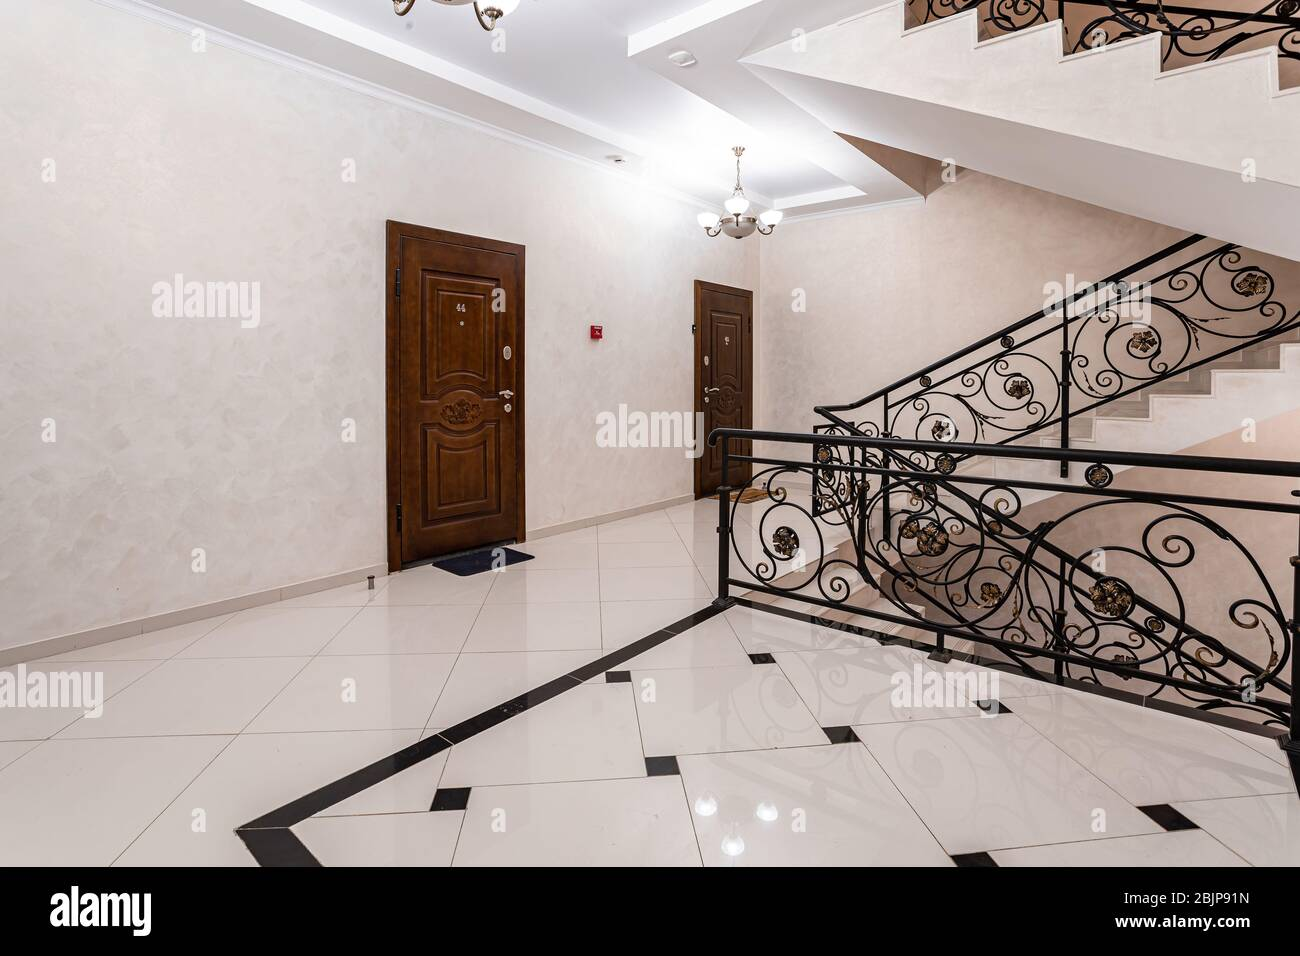 Spacious Entrance Hall With Light Walls And Marble Floor Front Entrance Foyer Entrance Hall Of A Large City House Stock Photo Alamy